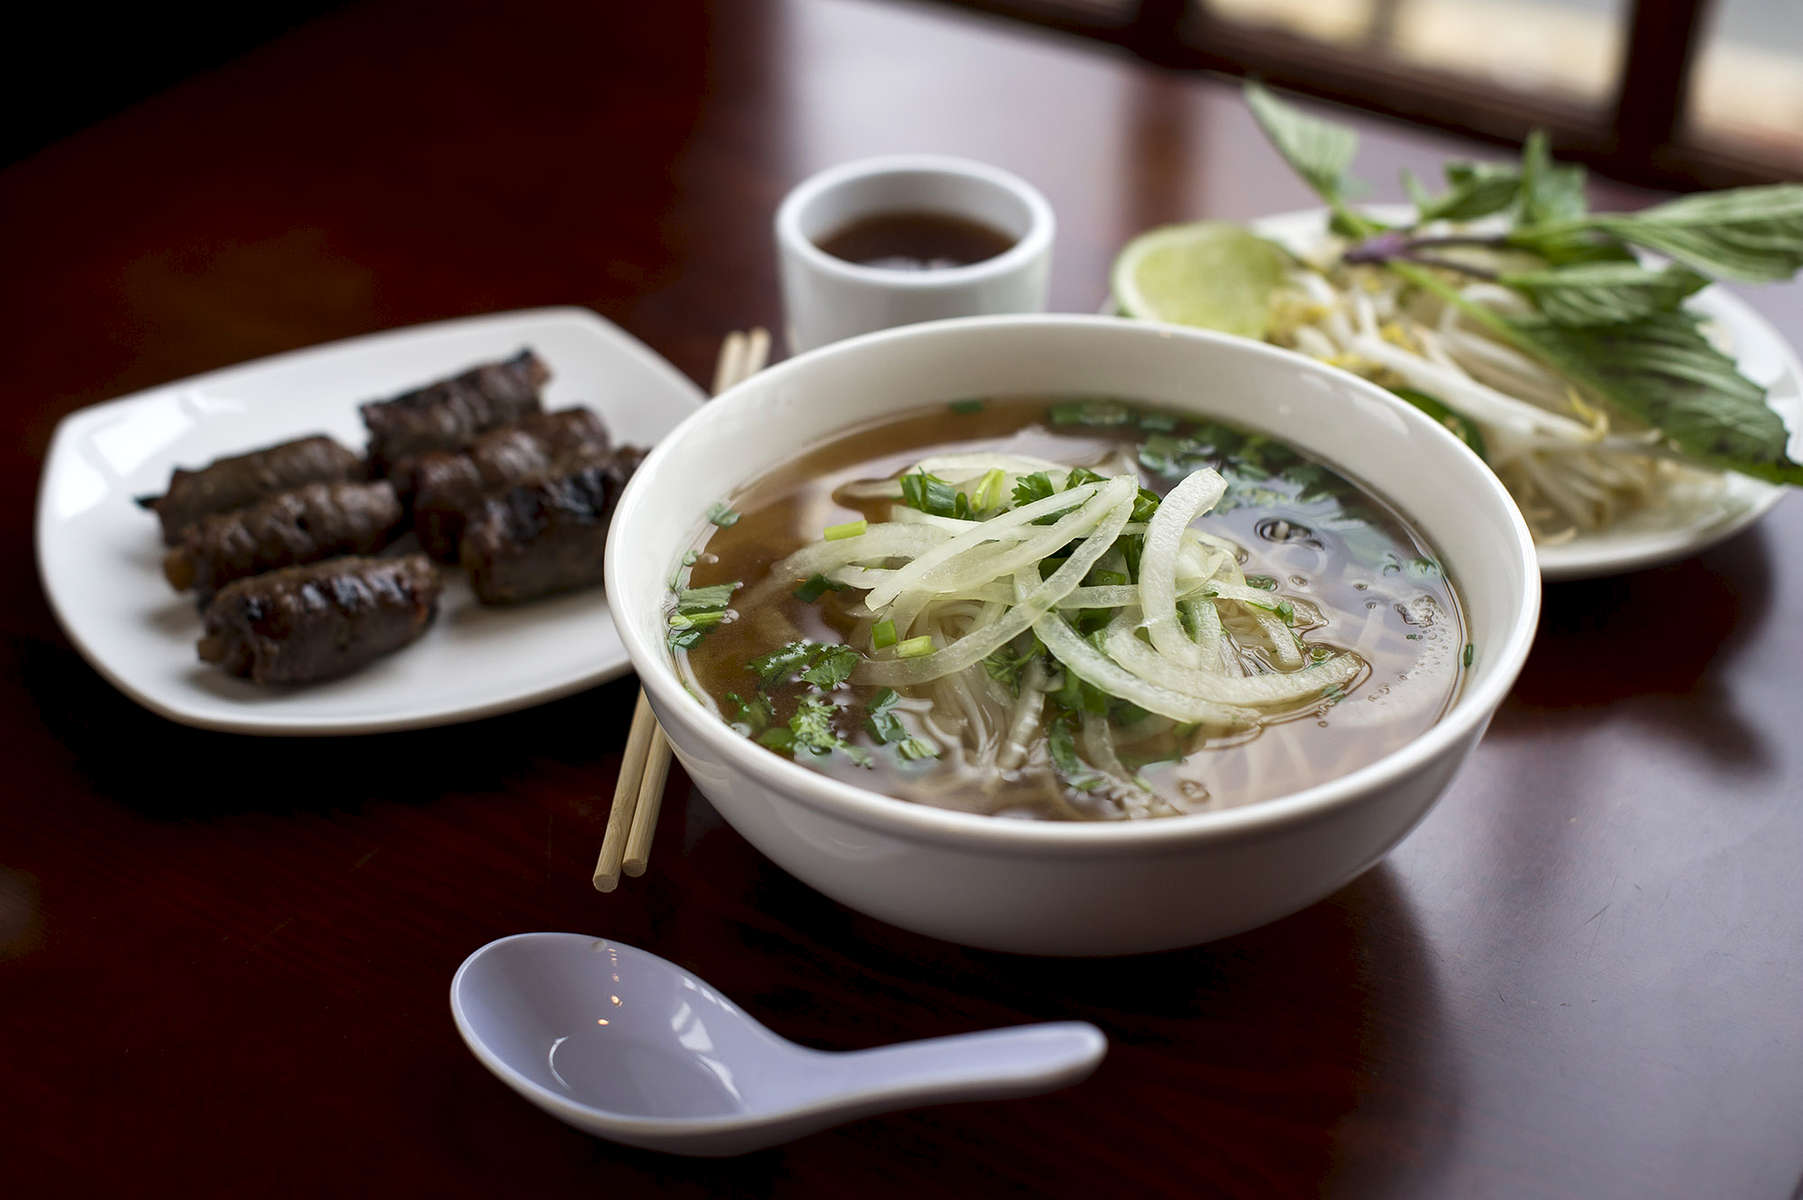 FLORHAM PARK, NJ    USA  (12/20/2014)  Viet Ai in Florham Park, N.J, is photographed for a NJ Dine Review Saturday, December 20, 2014.   The Beef Soup with Grilled Beef. Matt Rainey for The New York Times